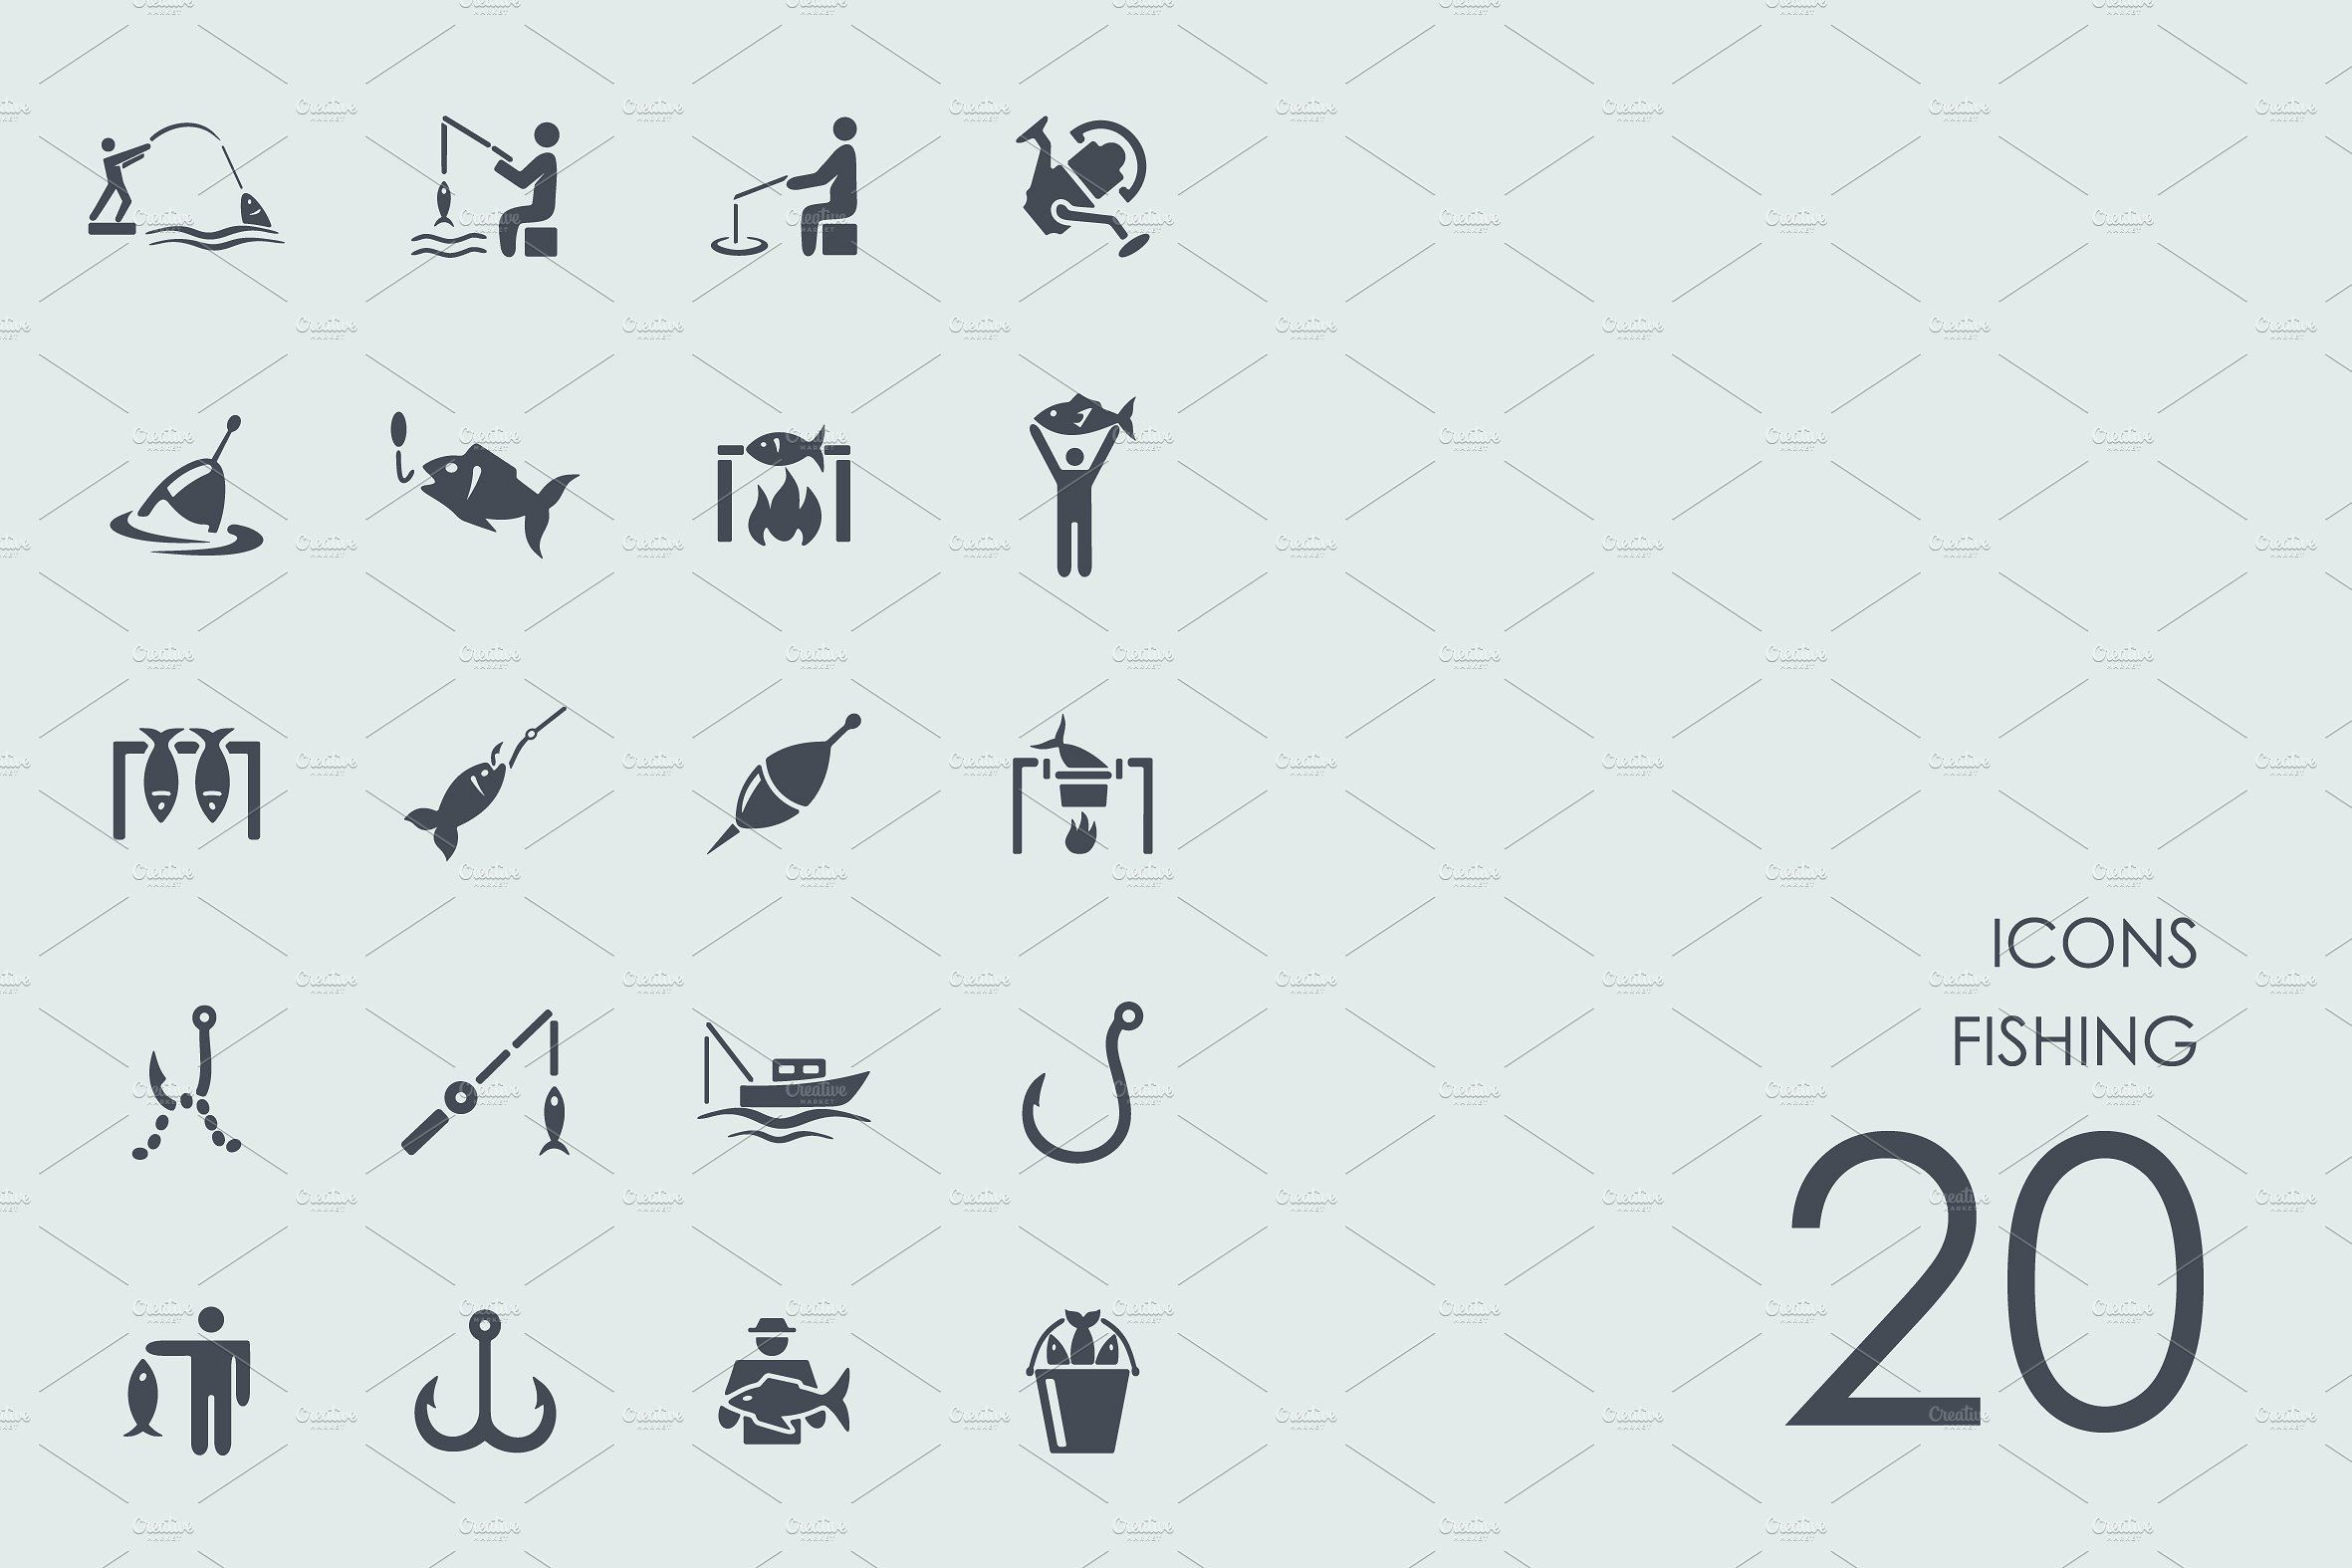 Fishing icons Icon, Simple icon, Ios apps